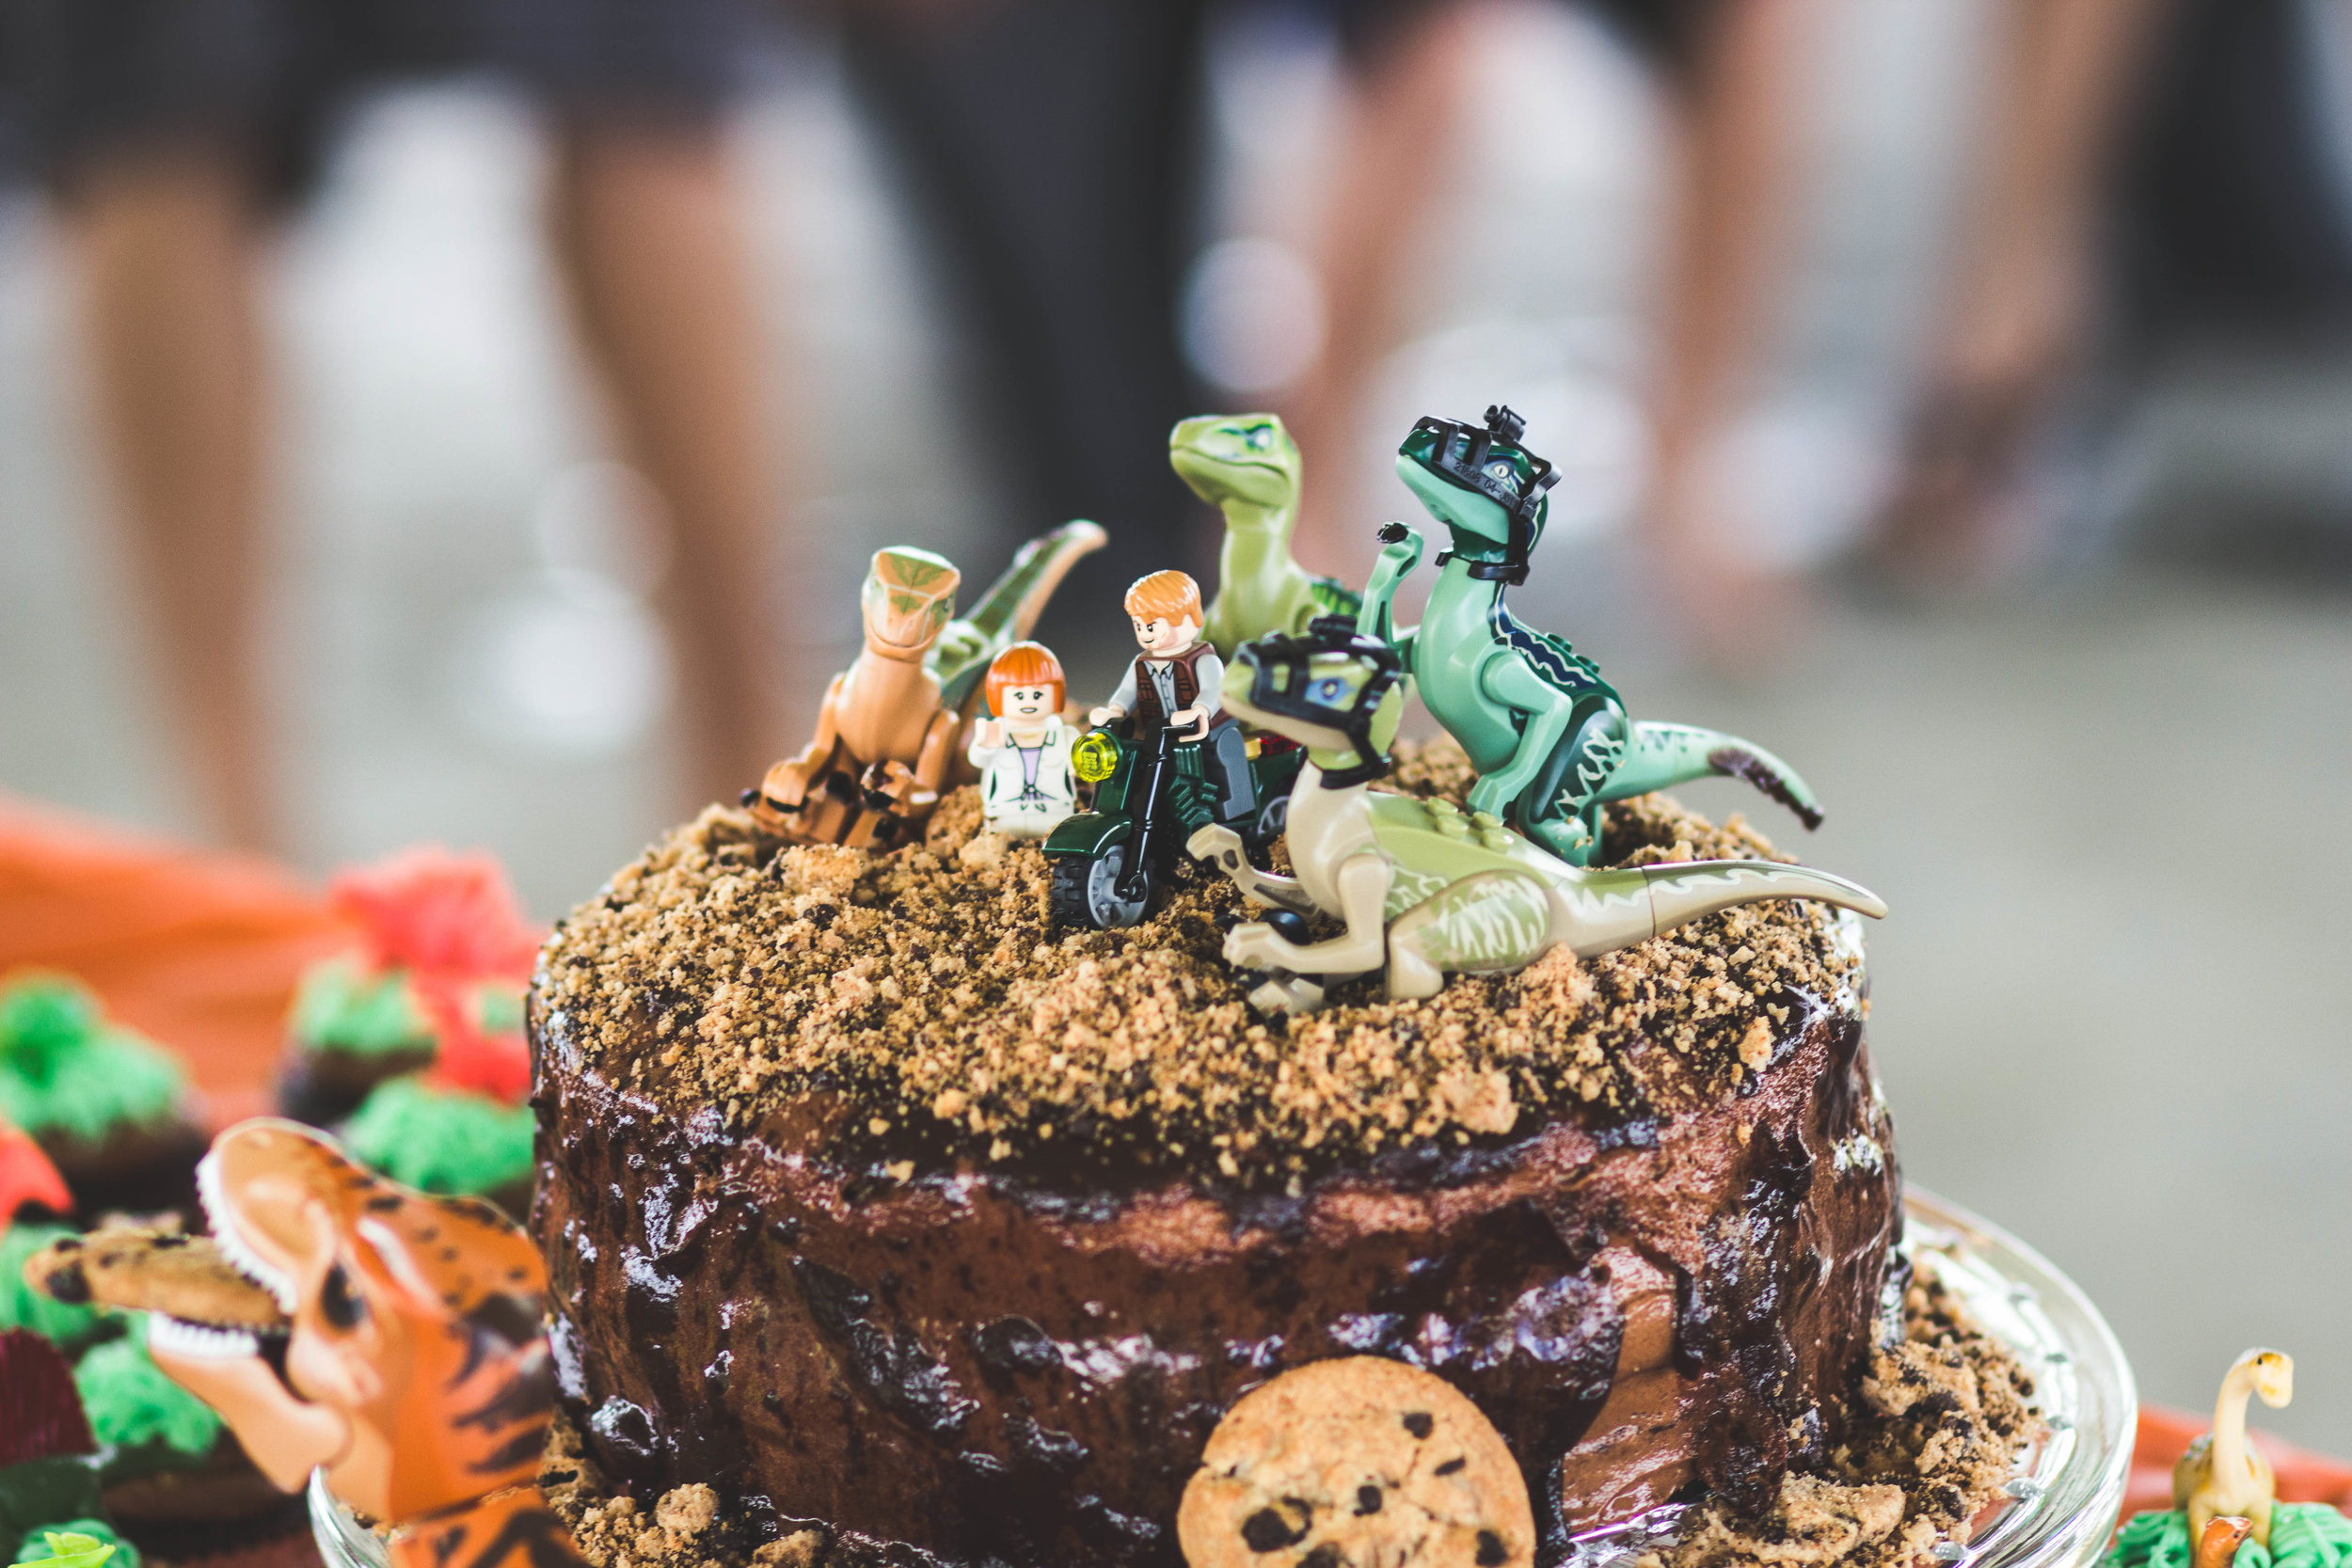 Jurassic World Cake. Check out dino party ideas on shopmkkm.com